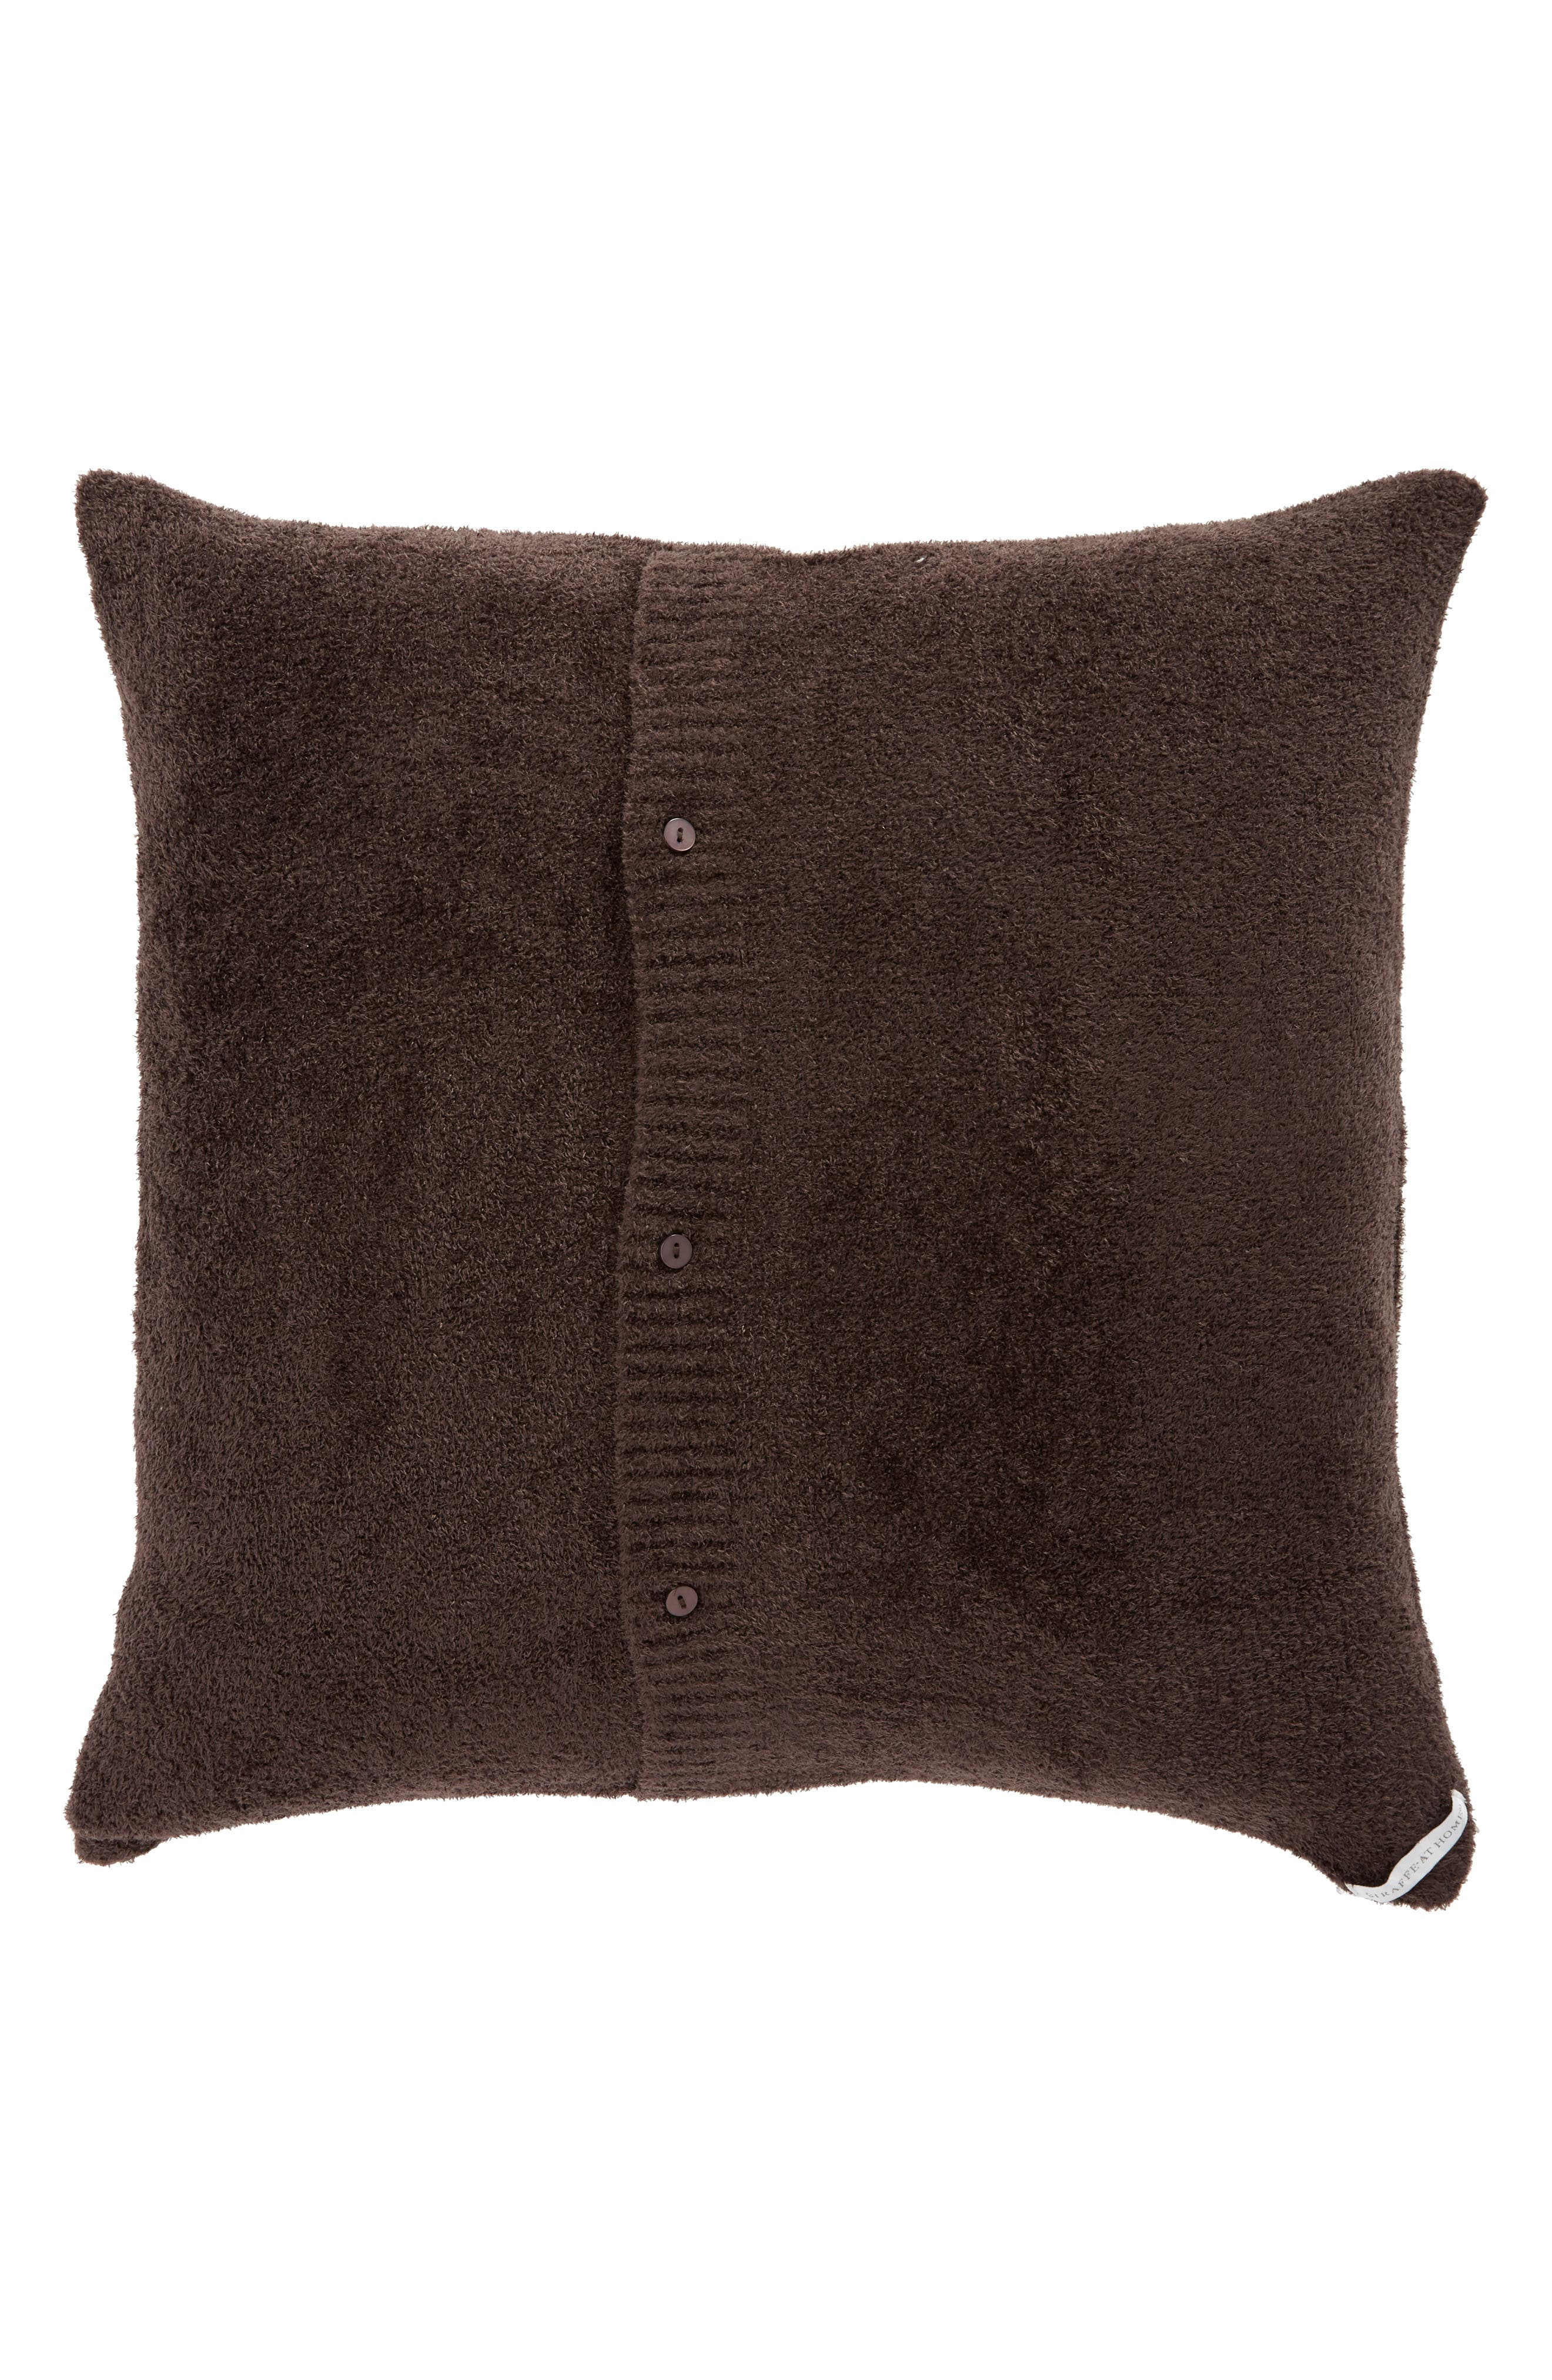 Dolce Love Throw Pillow,                             Alternate thumbnail 2, color,                             CHOCOLATE